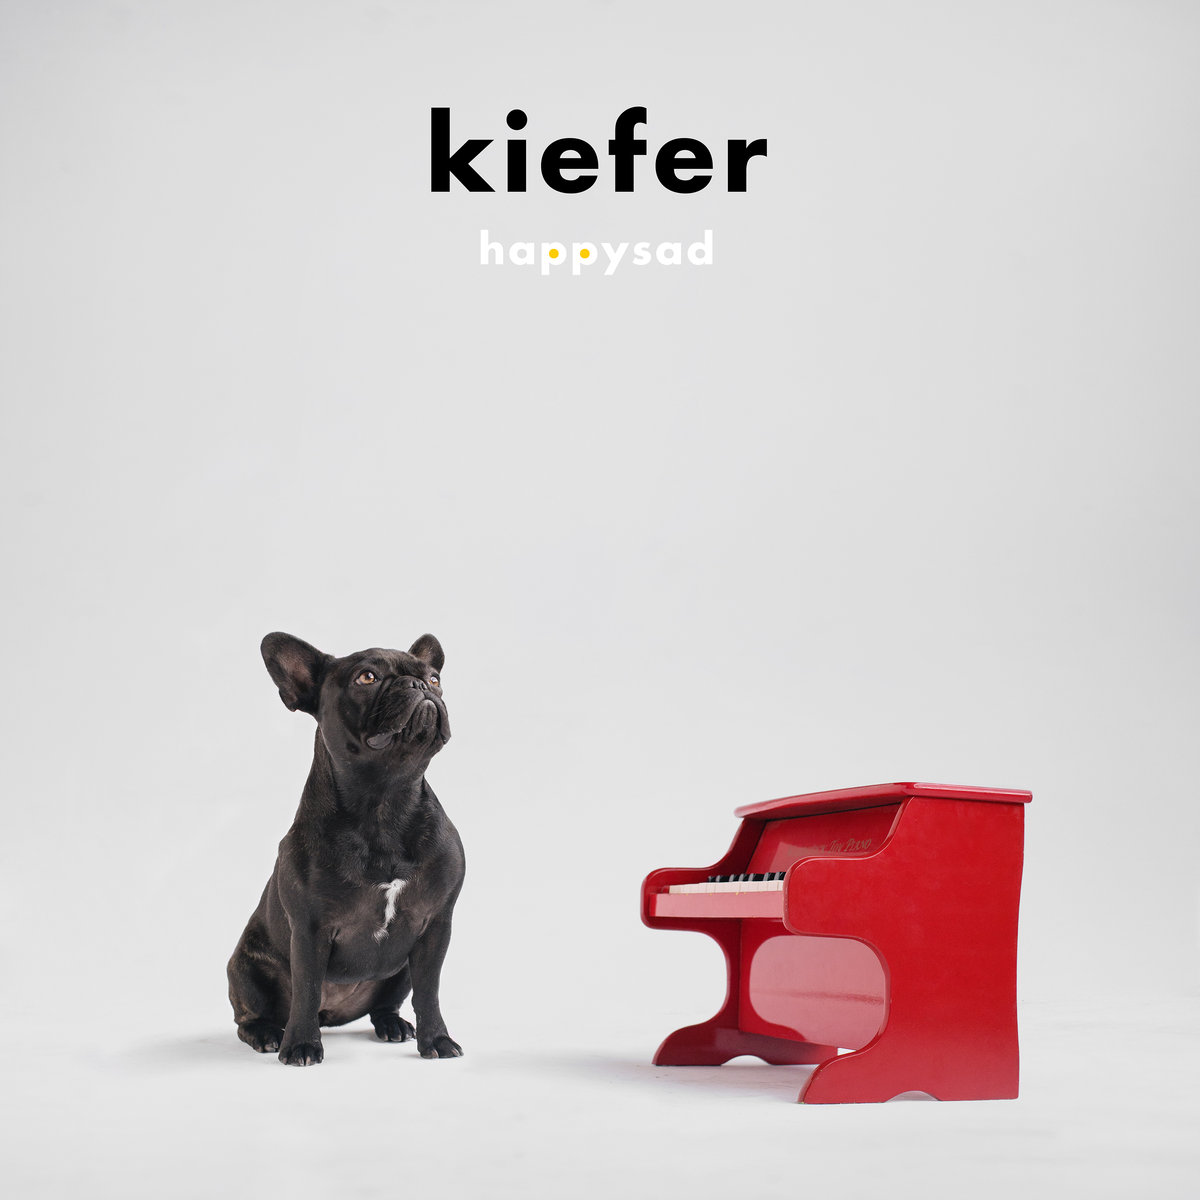 « WHAT A DAY » : UN JOUR DE KIEFER À LOS ANGELES